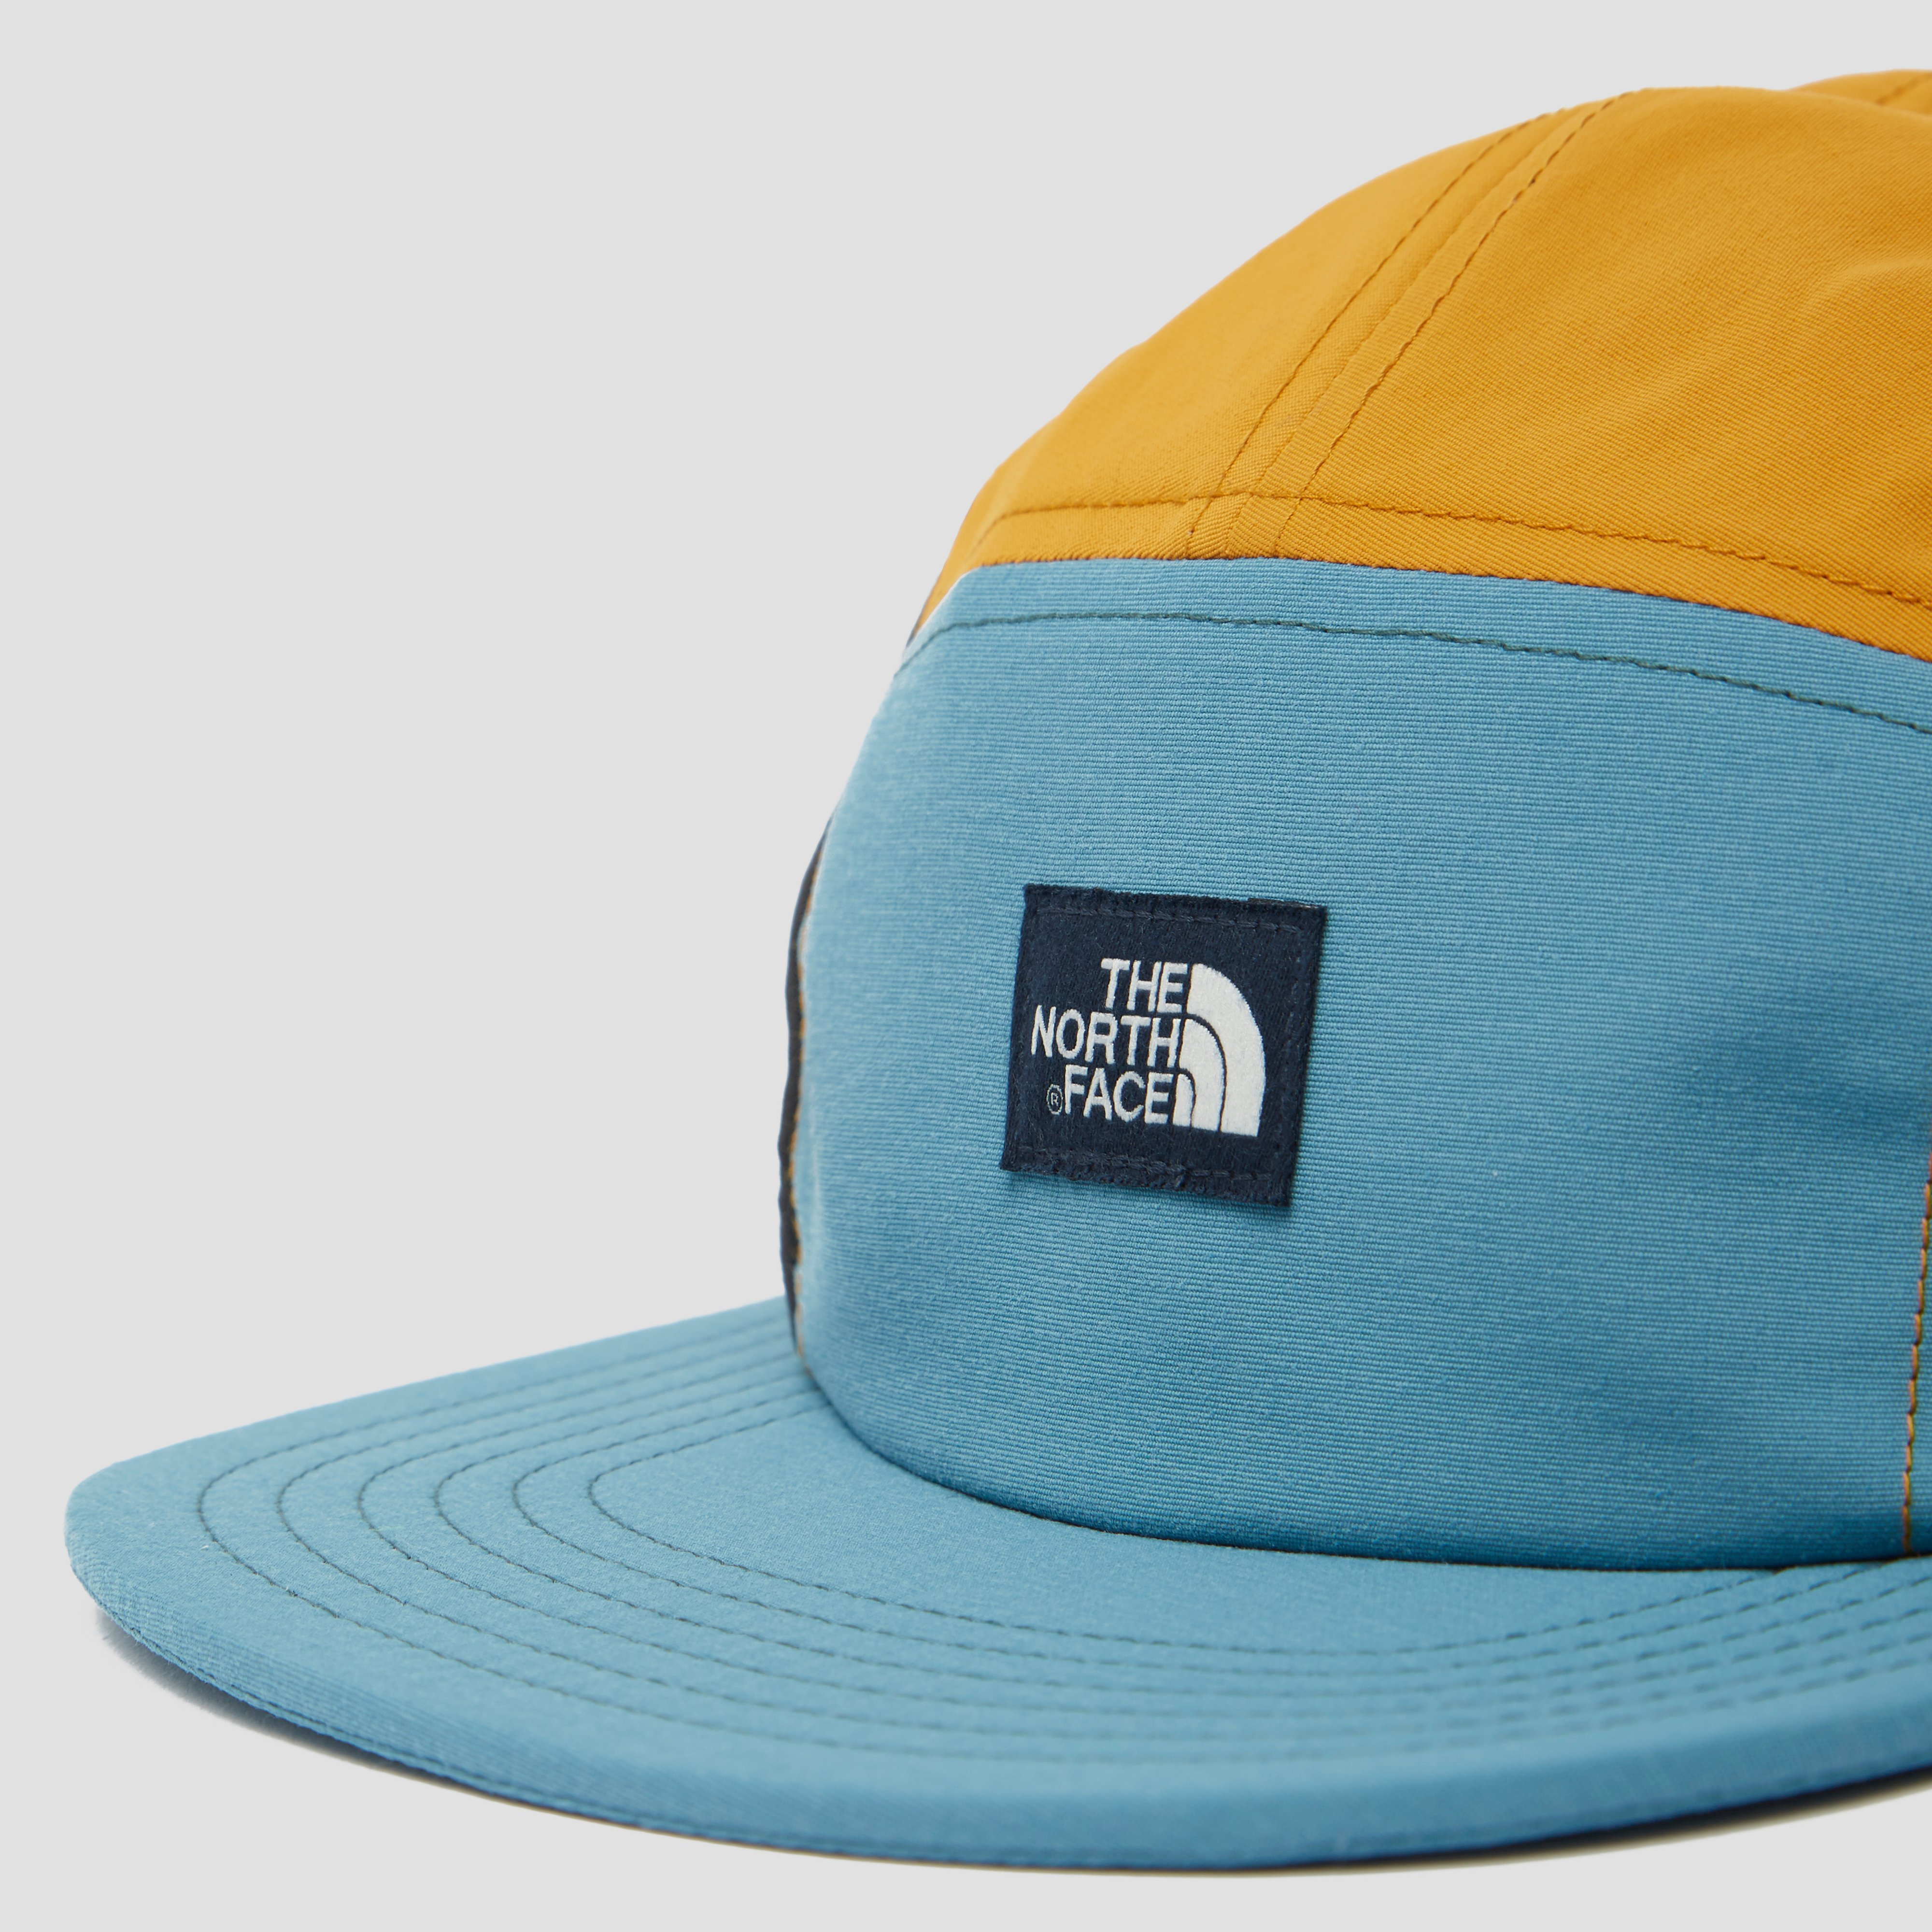 THE NORTH FACE CLASS V 5-PANEL PET BLAUW/GEEL